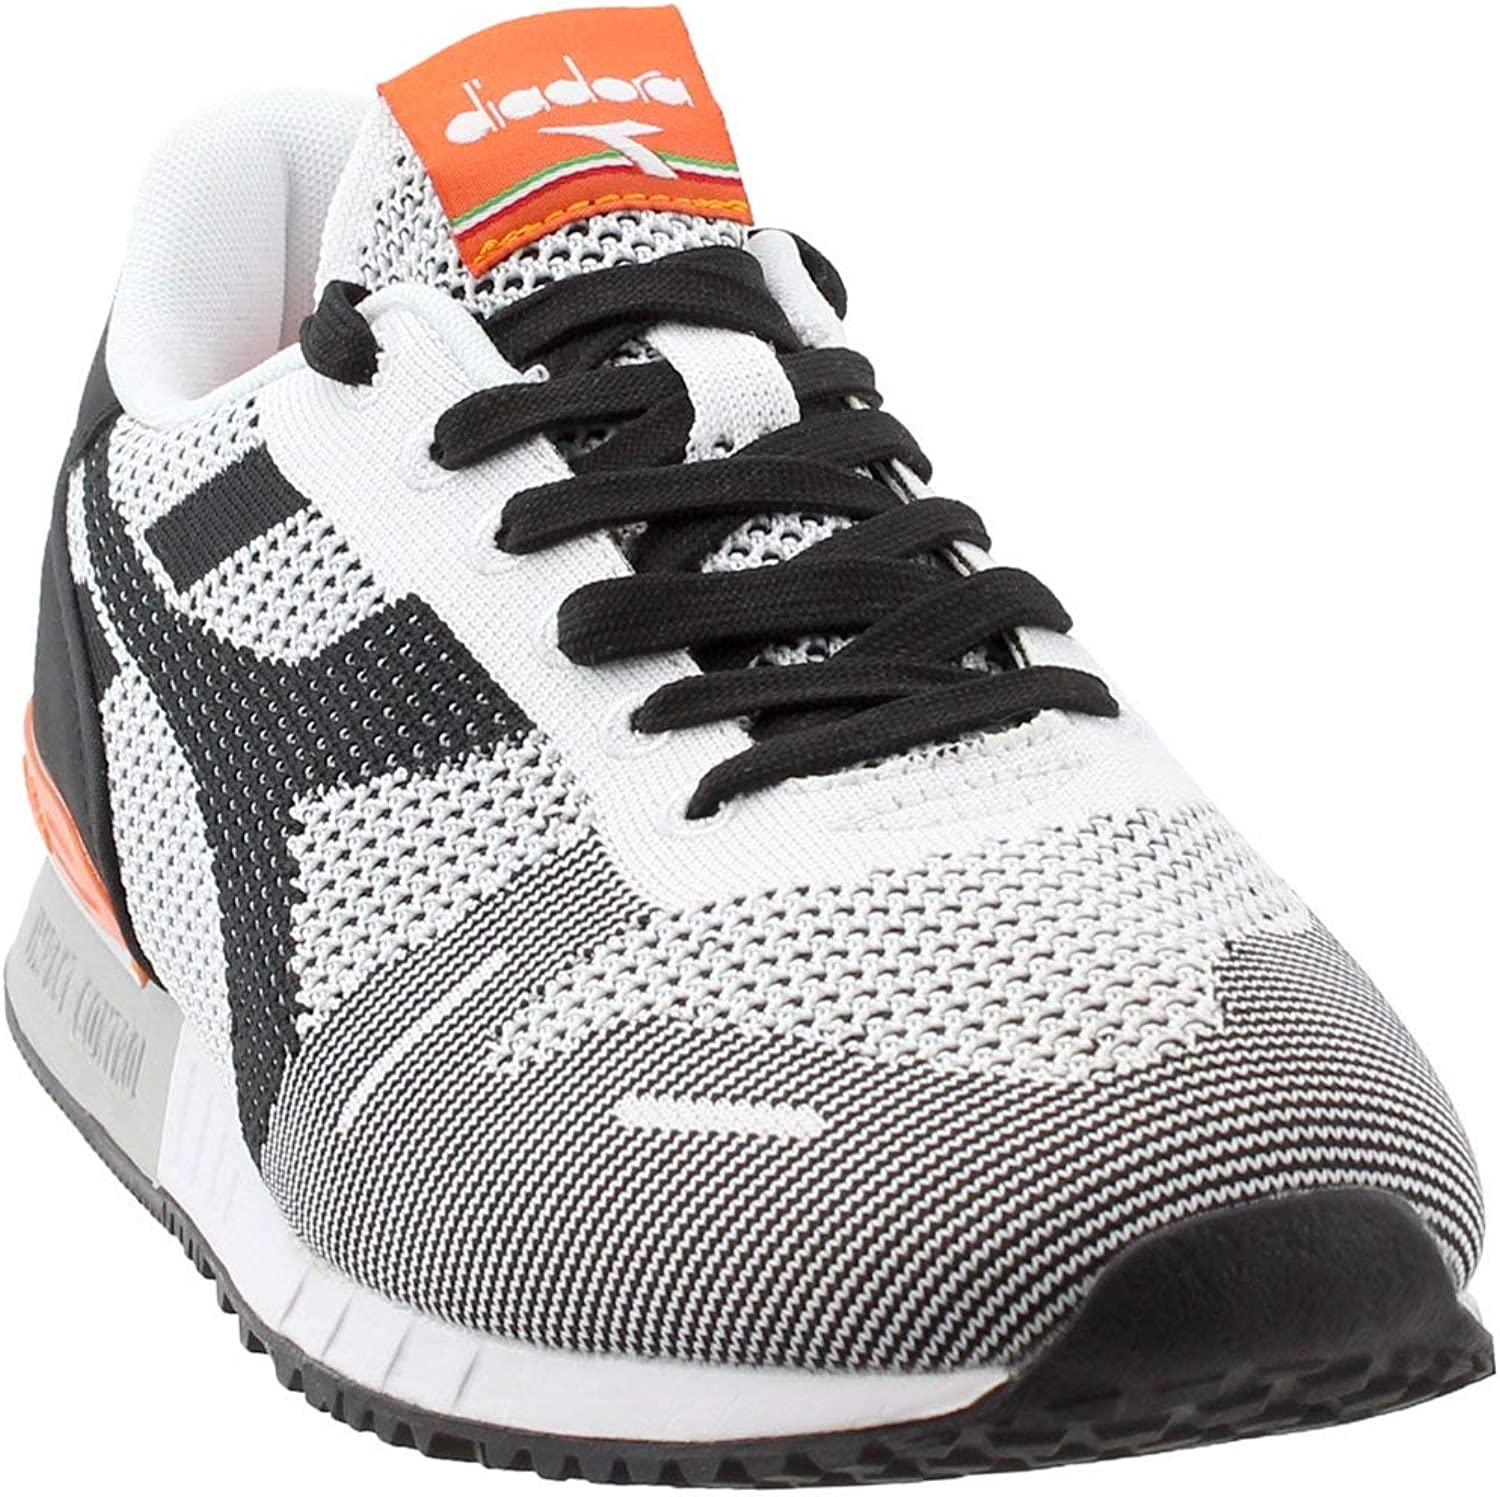 Diadora Unisex Titan Weave Athletic & Sneakers